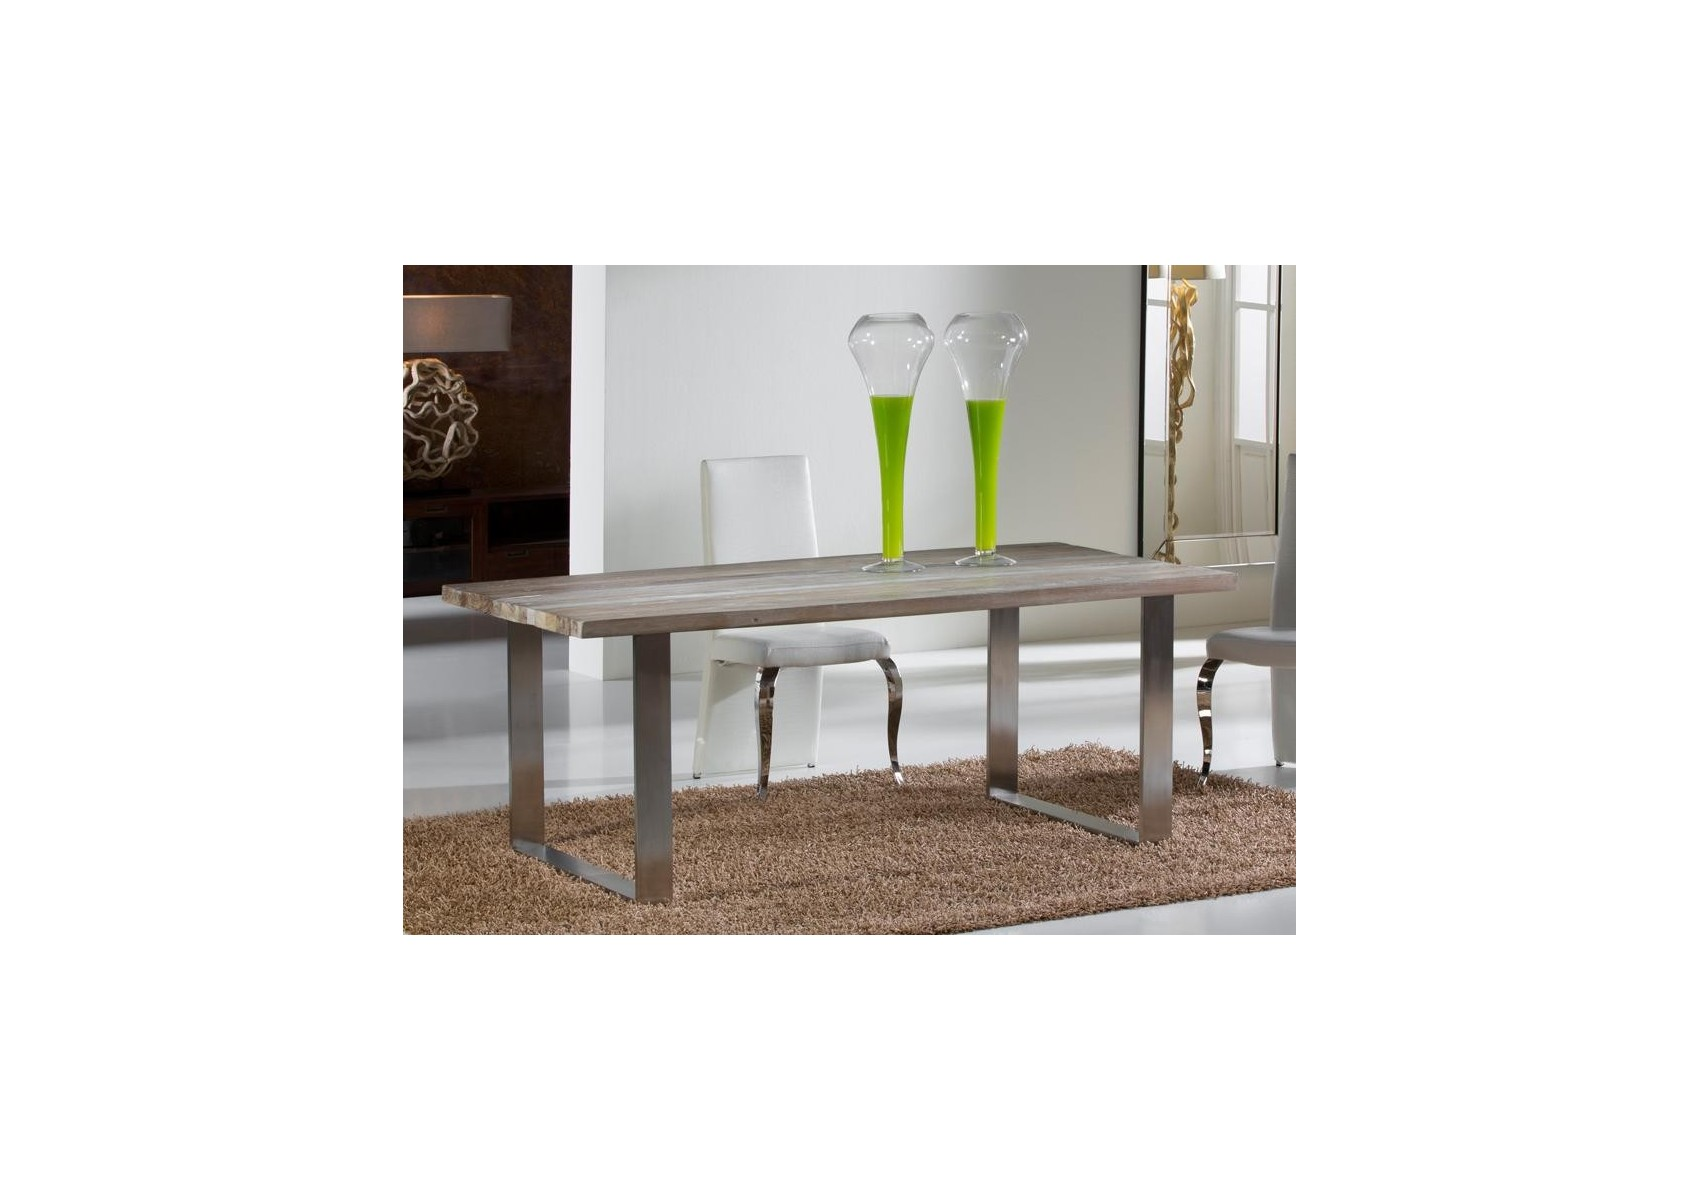 Model de table a manger en bois maison design for Table a manger bois brut